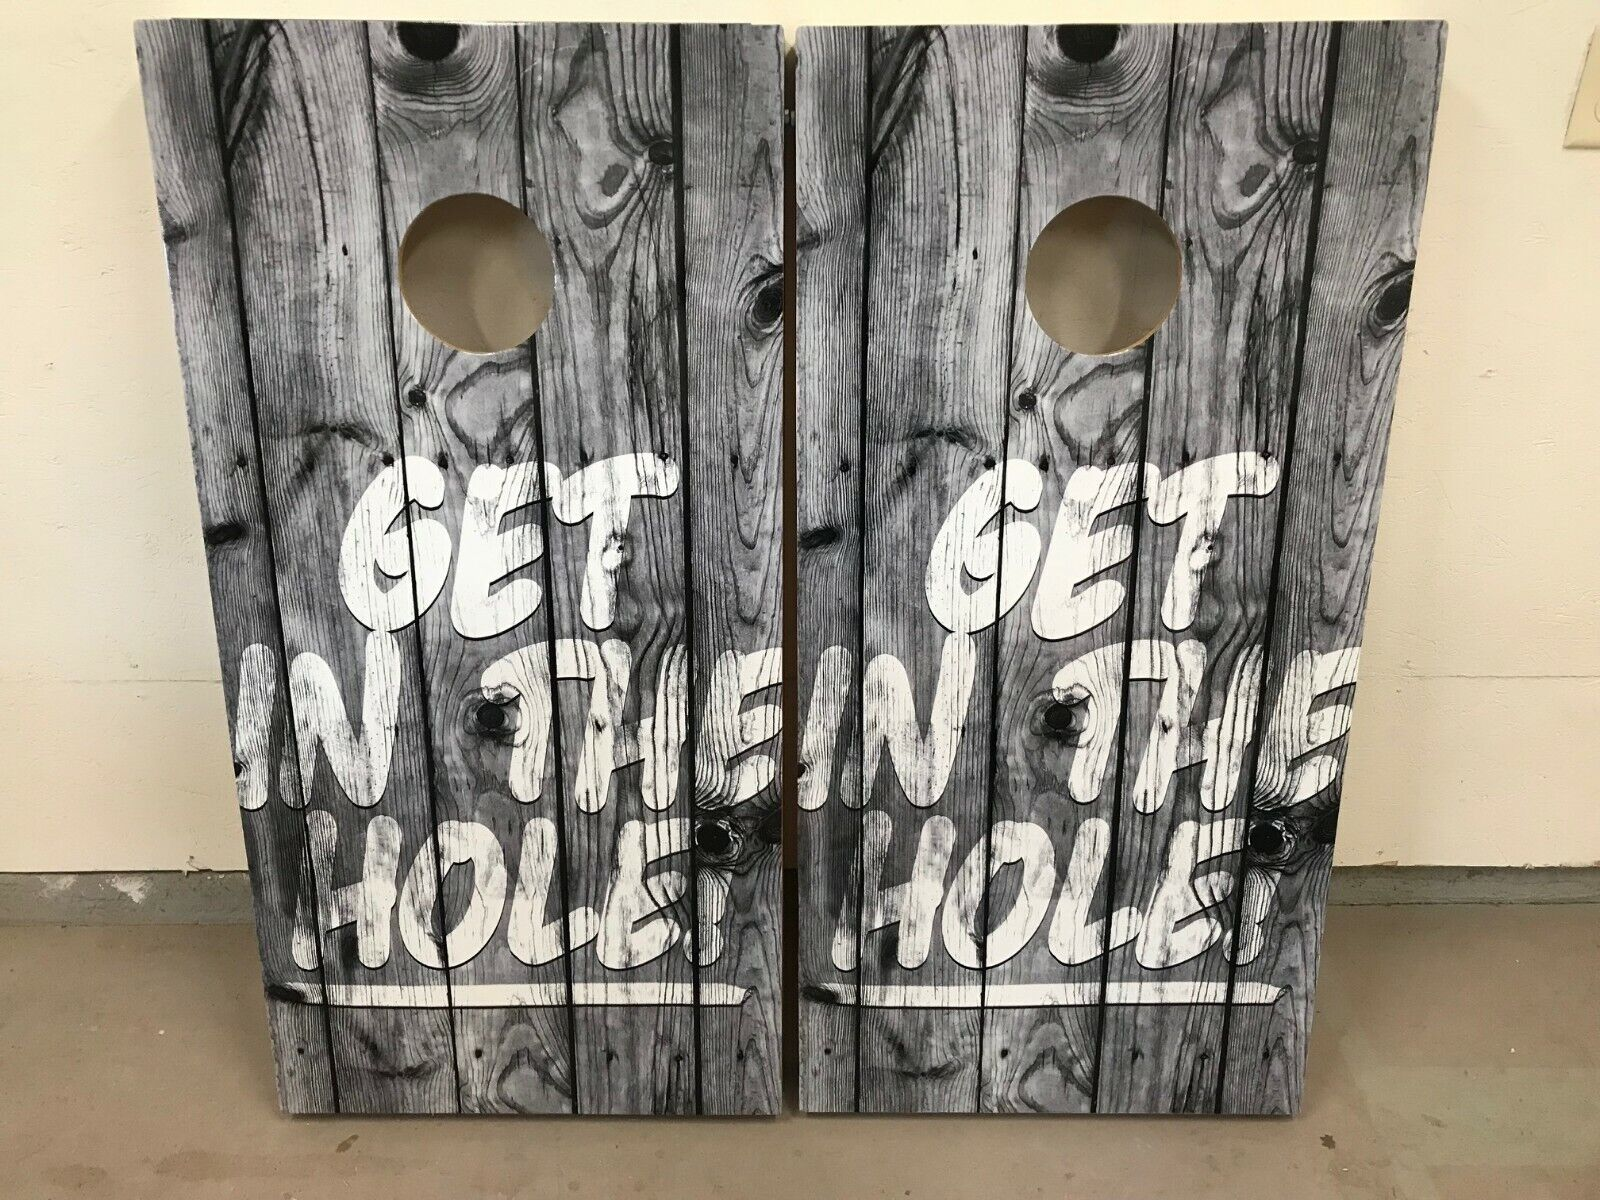 Get In The Hole Corn Hole Boards - Bean  Bag Toss Game  up to 60% off